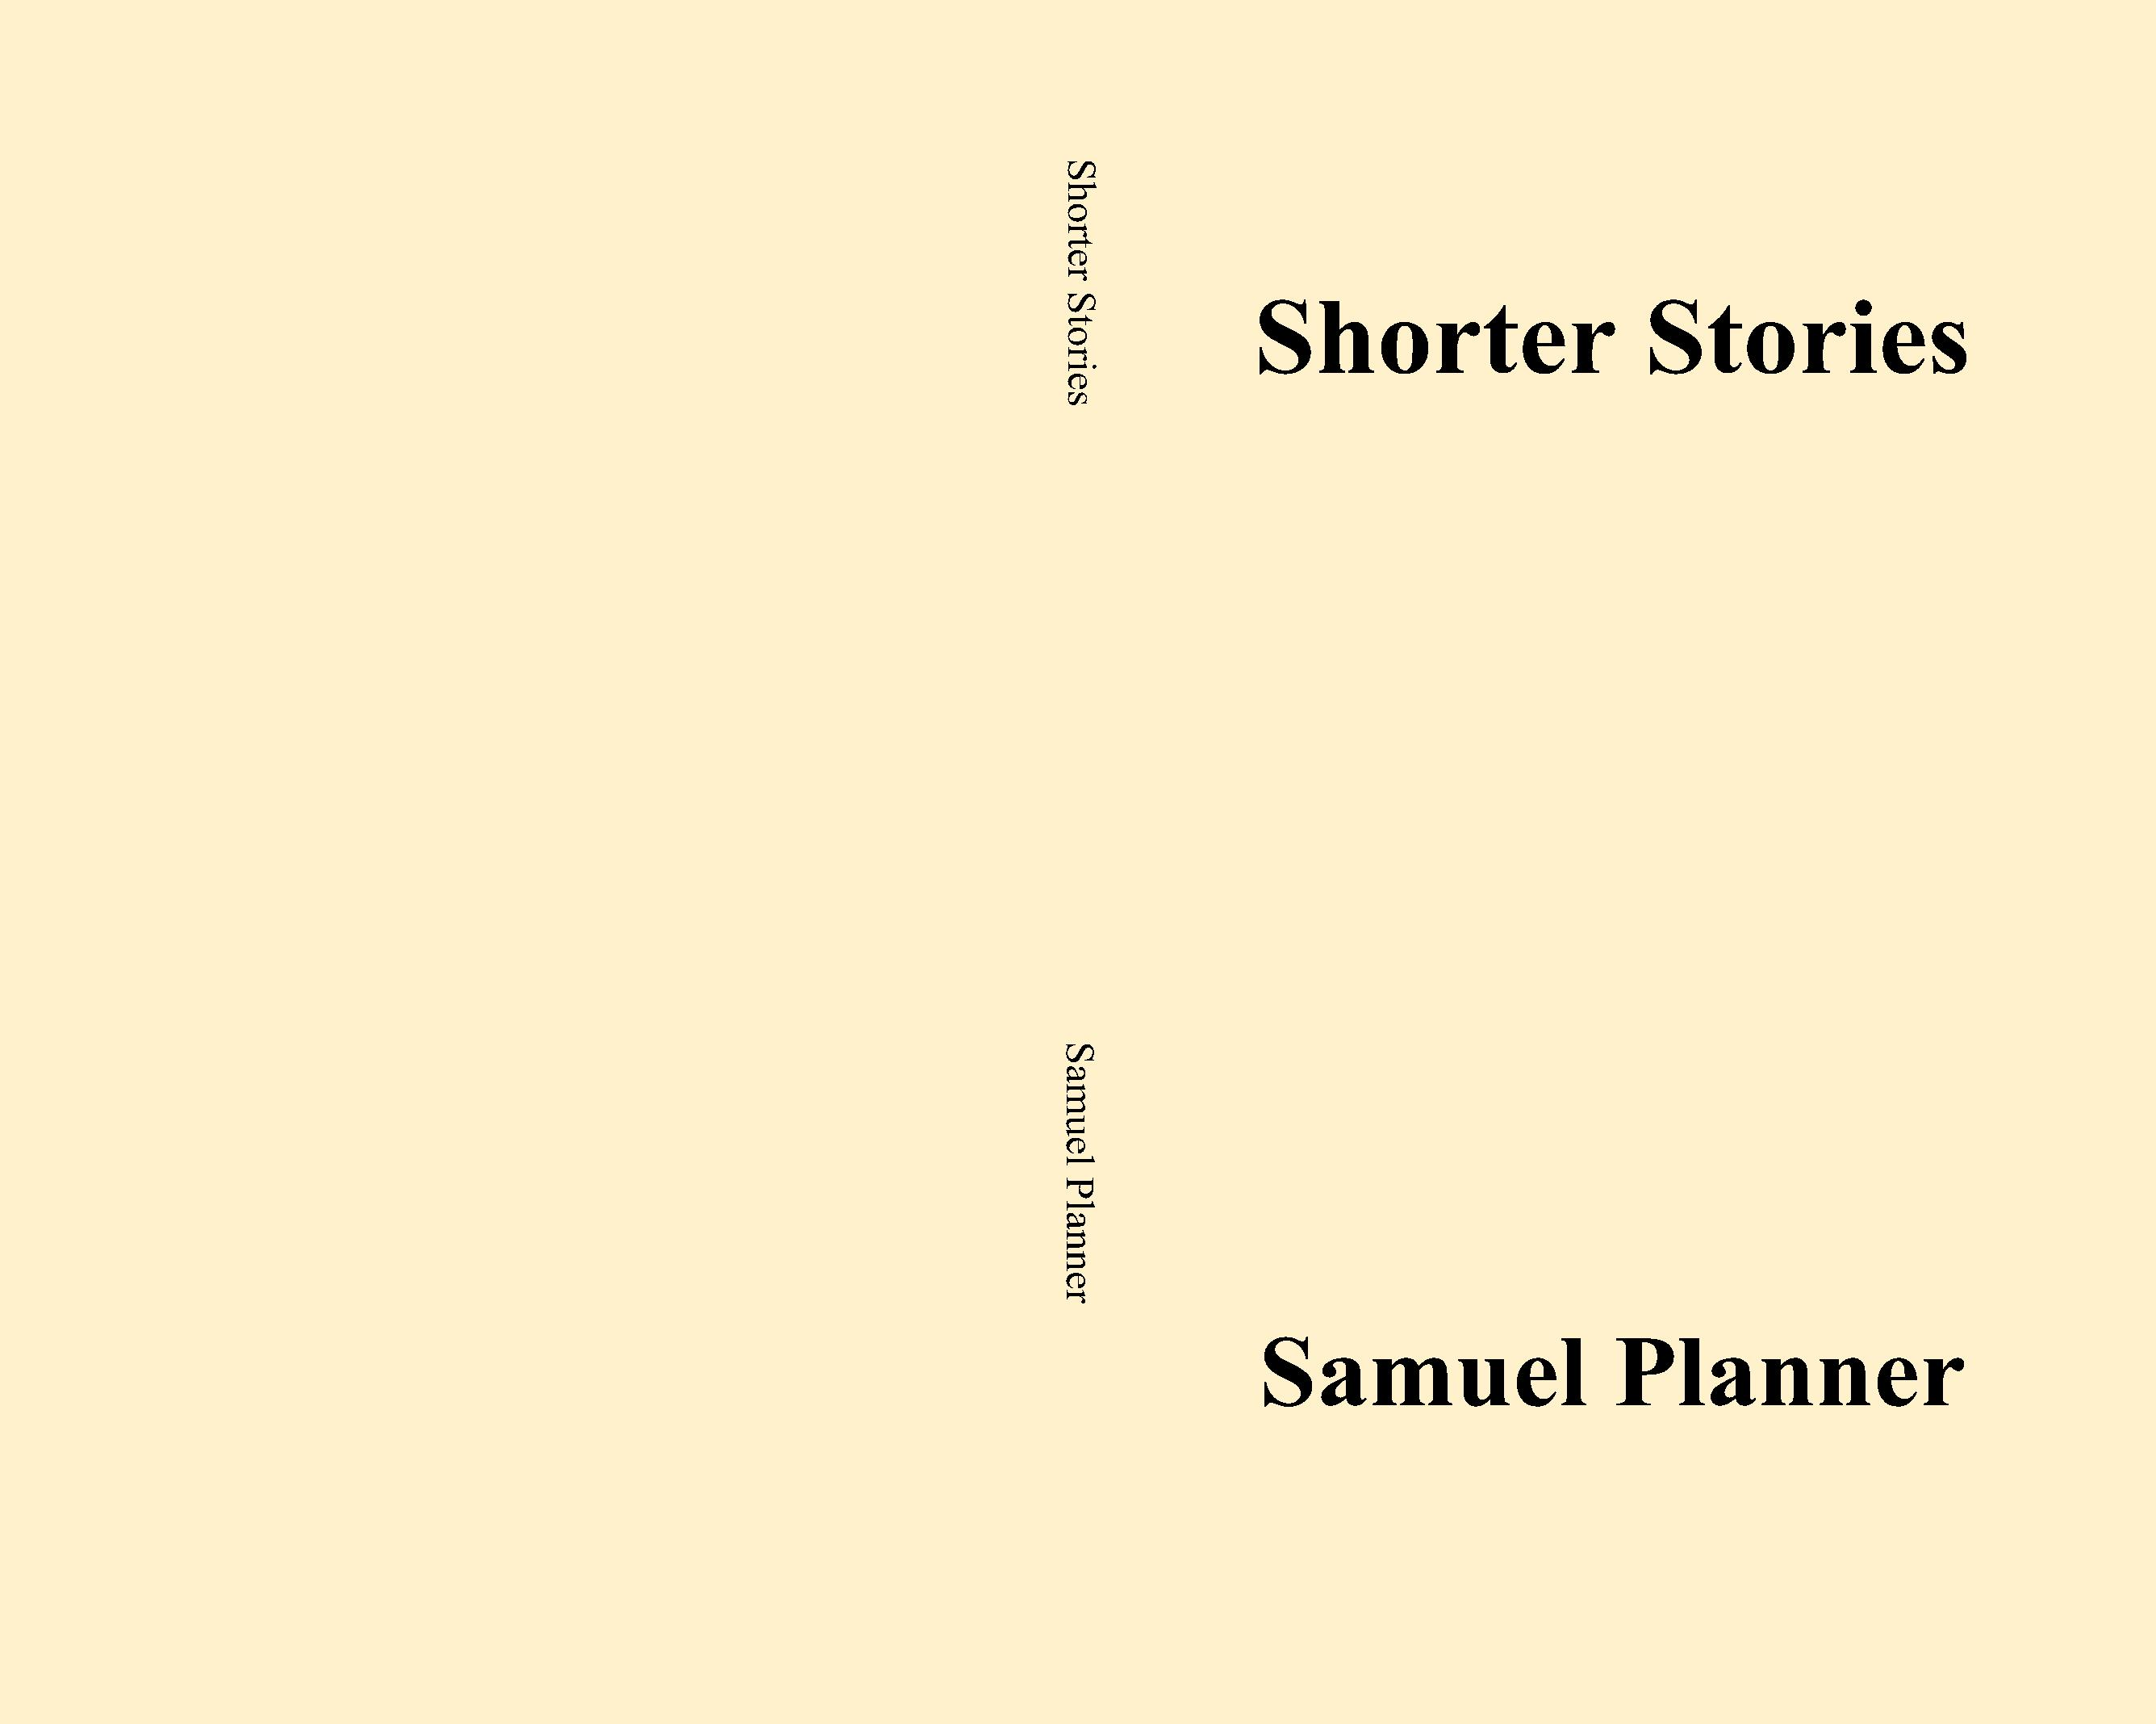 Shorter Stories cover image